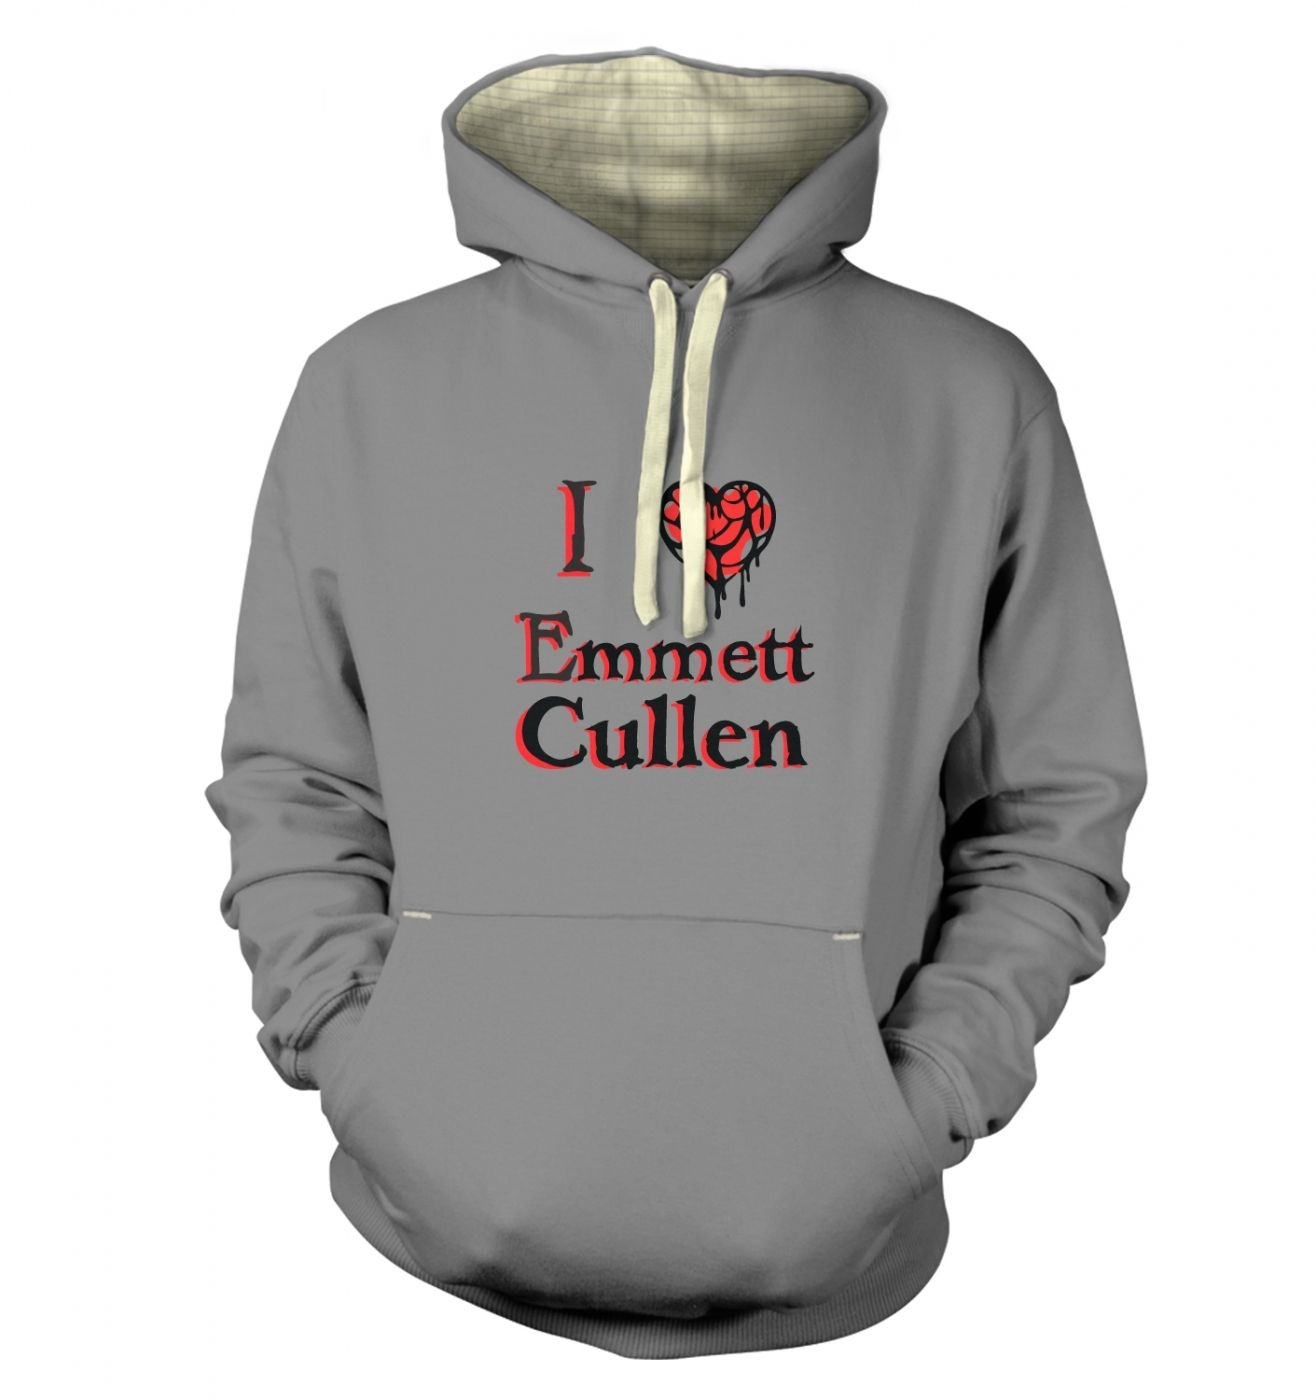 I heart Emmett Cullen premium hoodie - Inspired by Twilight